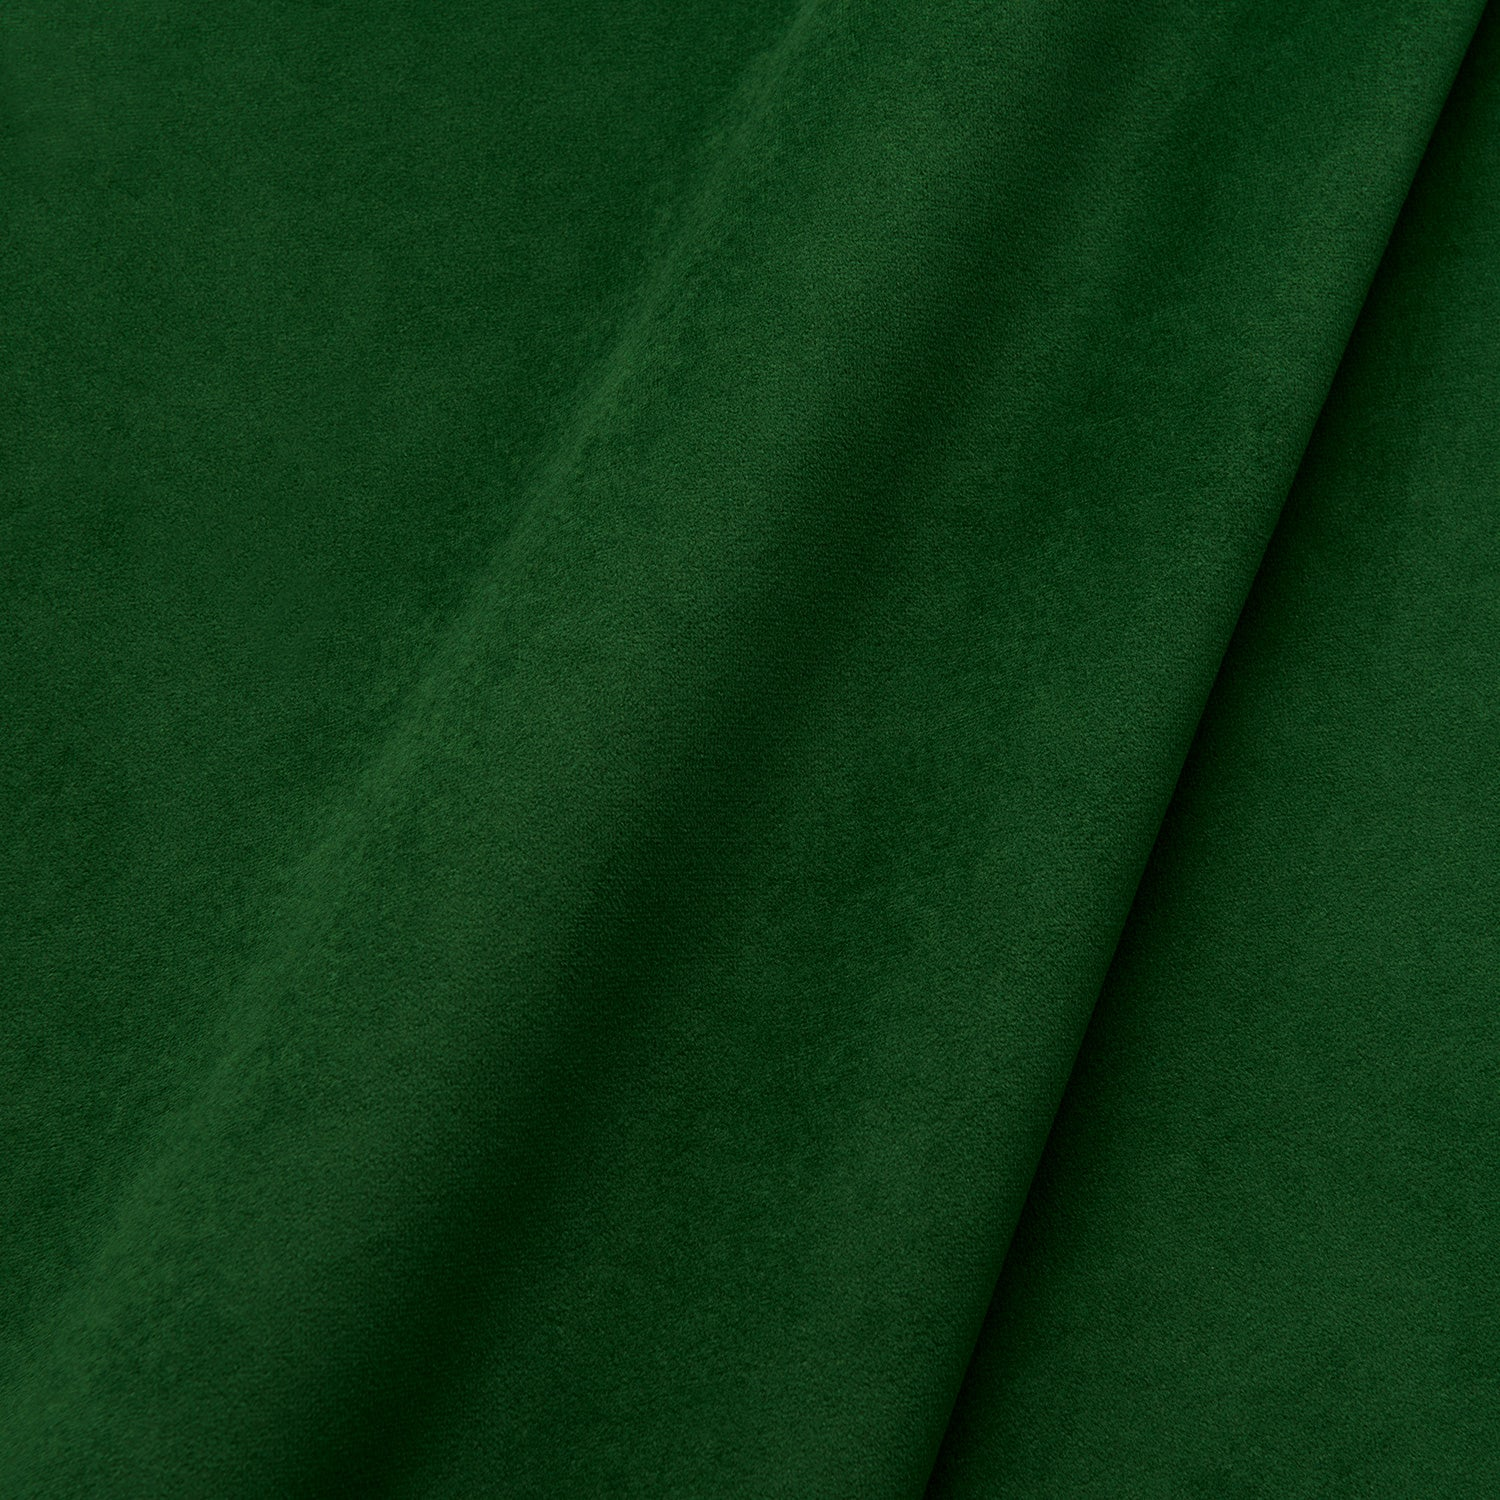 Fabric swatch of a plain stain resistant velvet upholstery fabric in a dark green colour